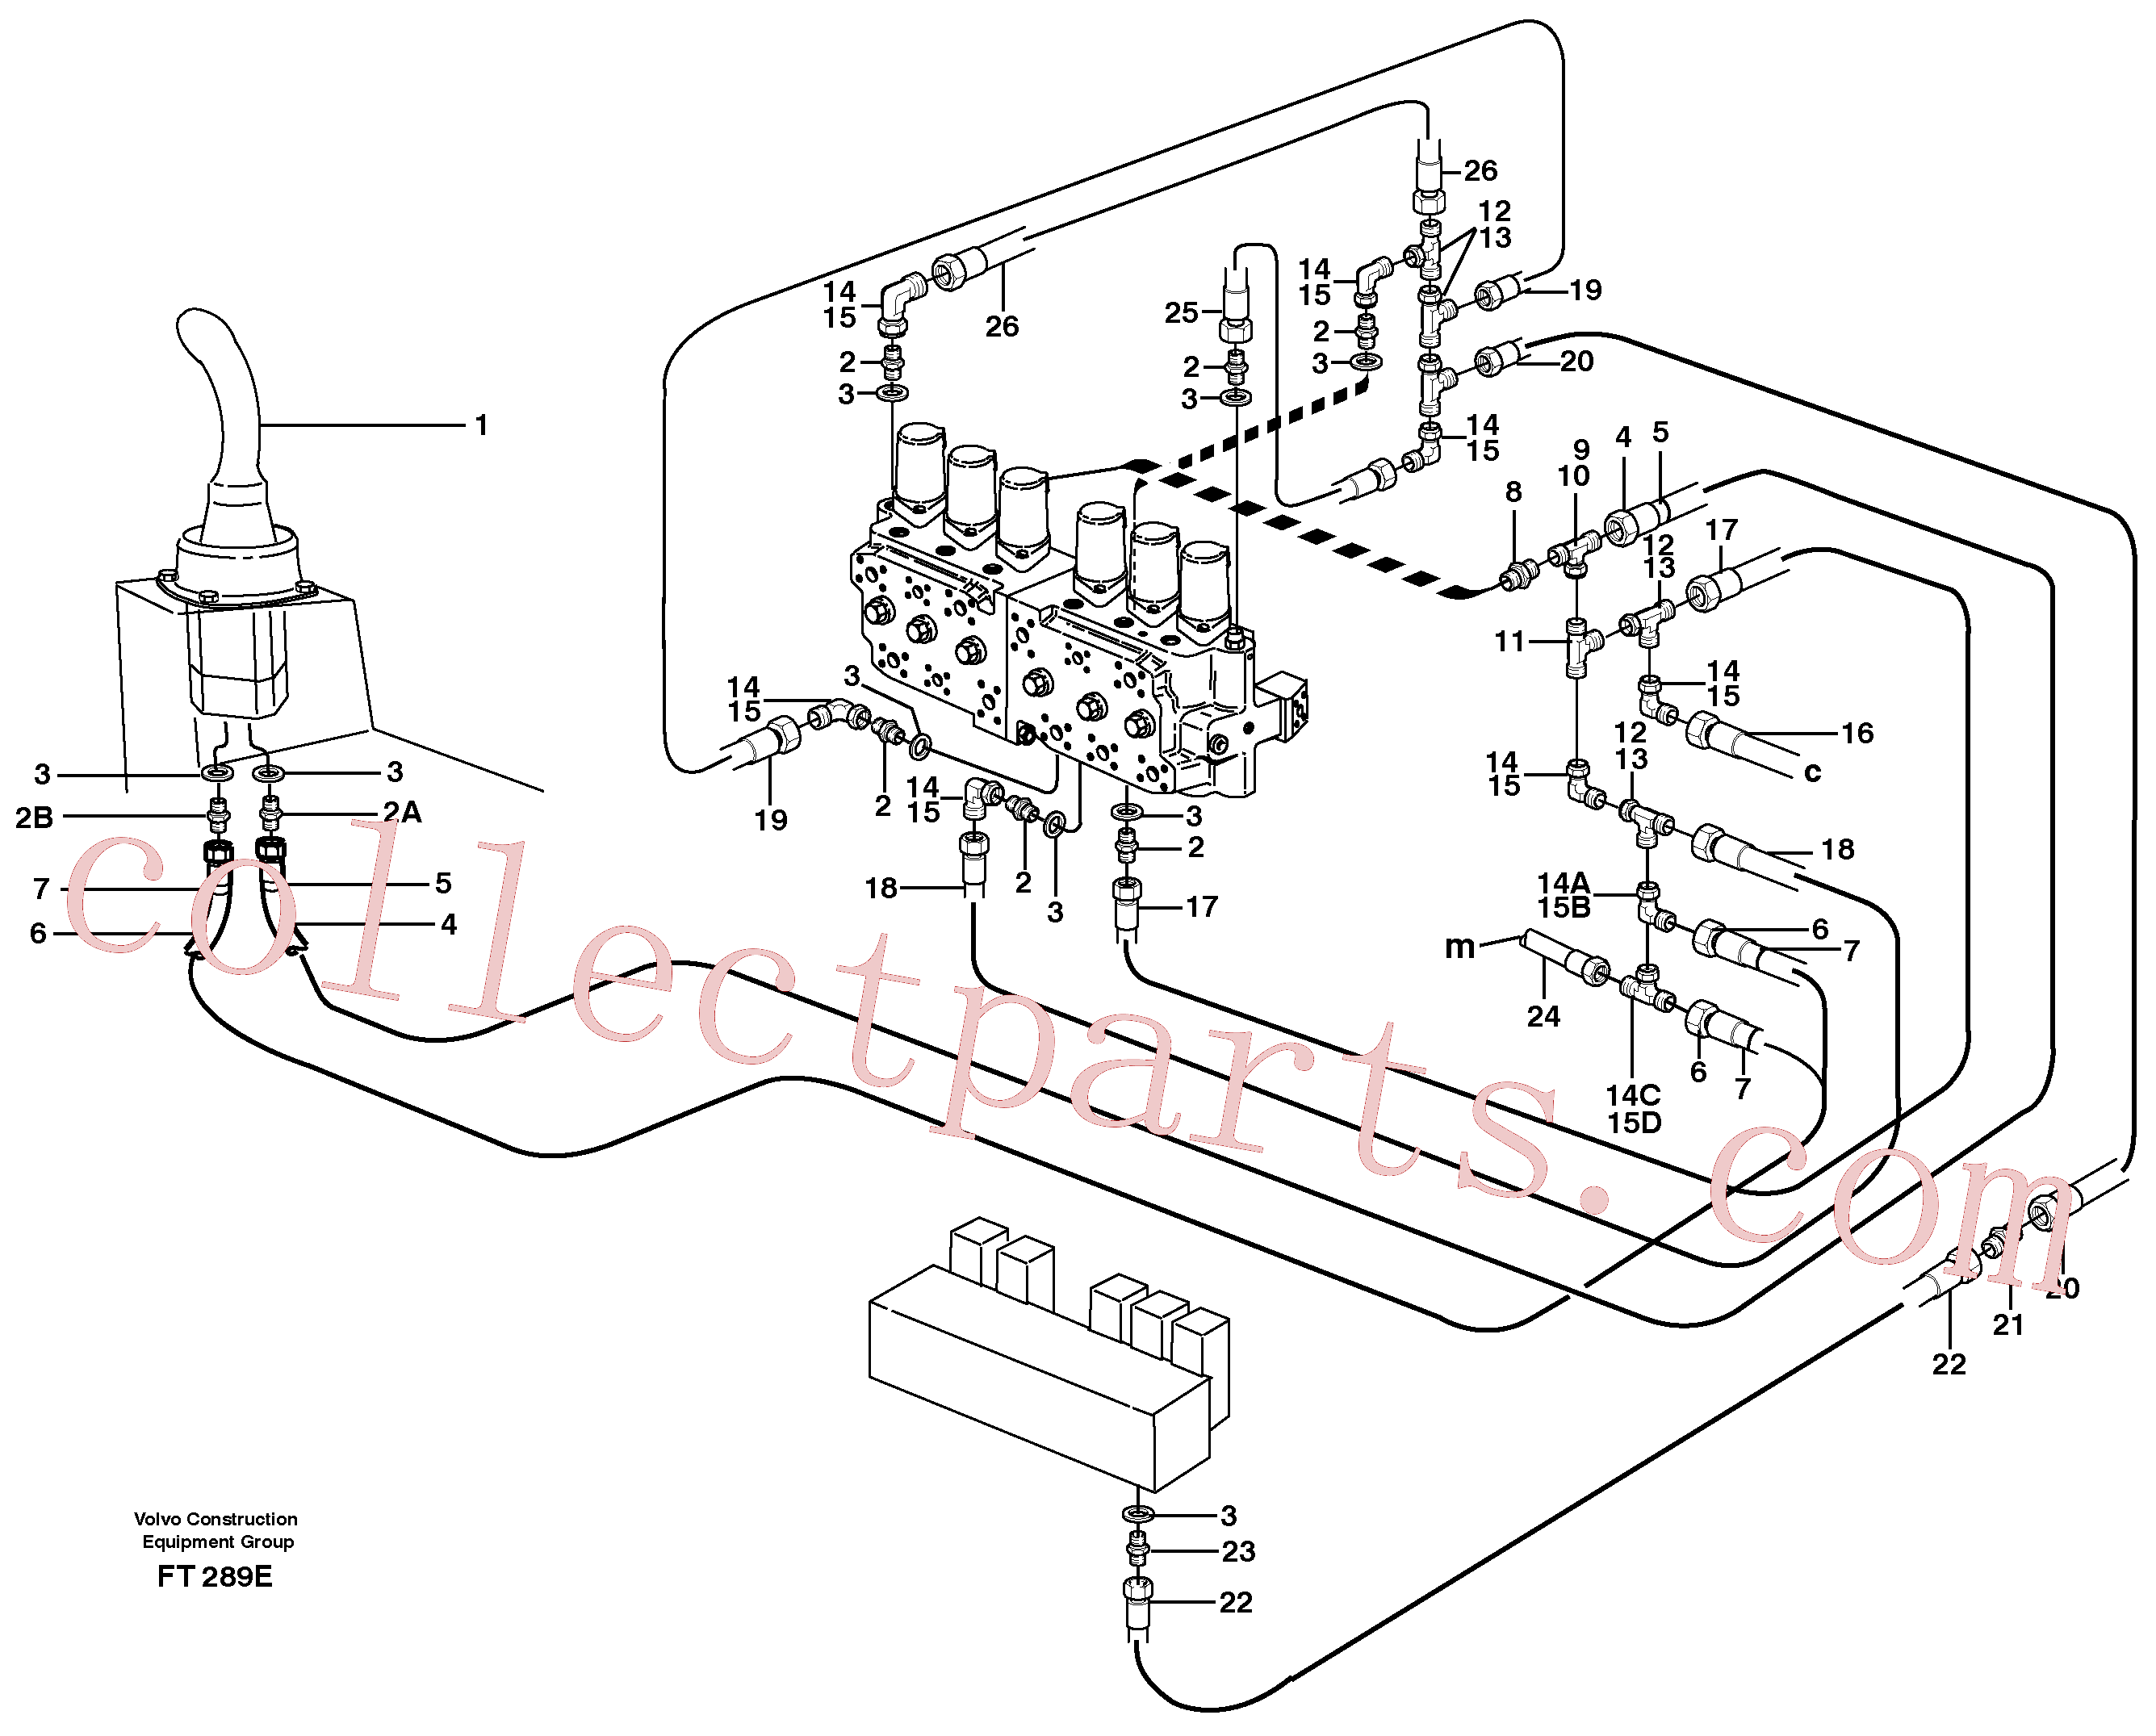 ZM7091906 for Volvo Servo hydraulics, dipper arm(FT289E assembly)